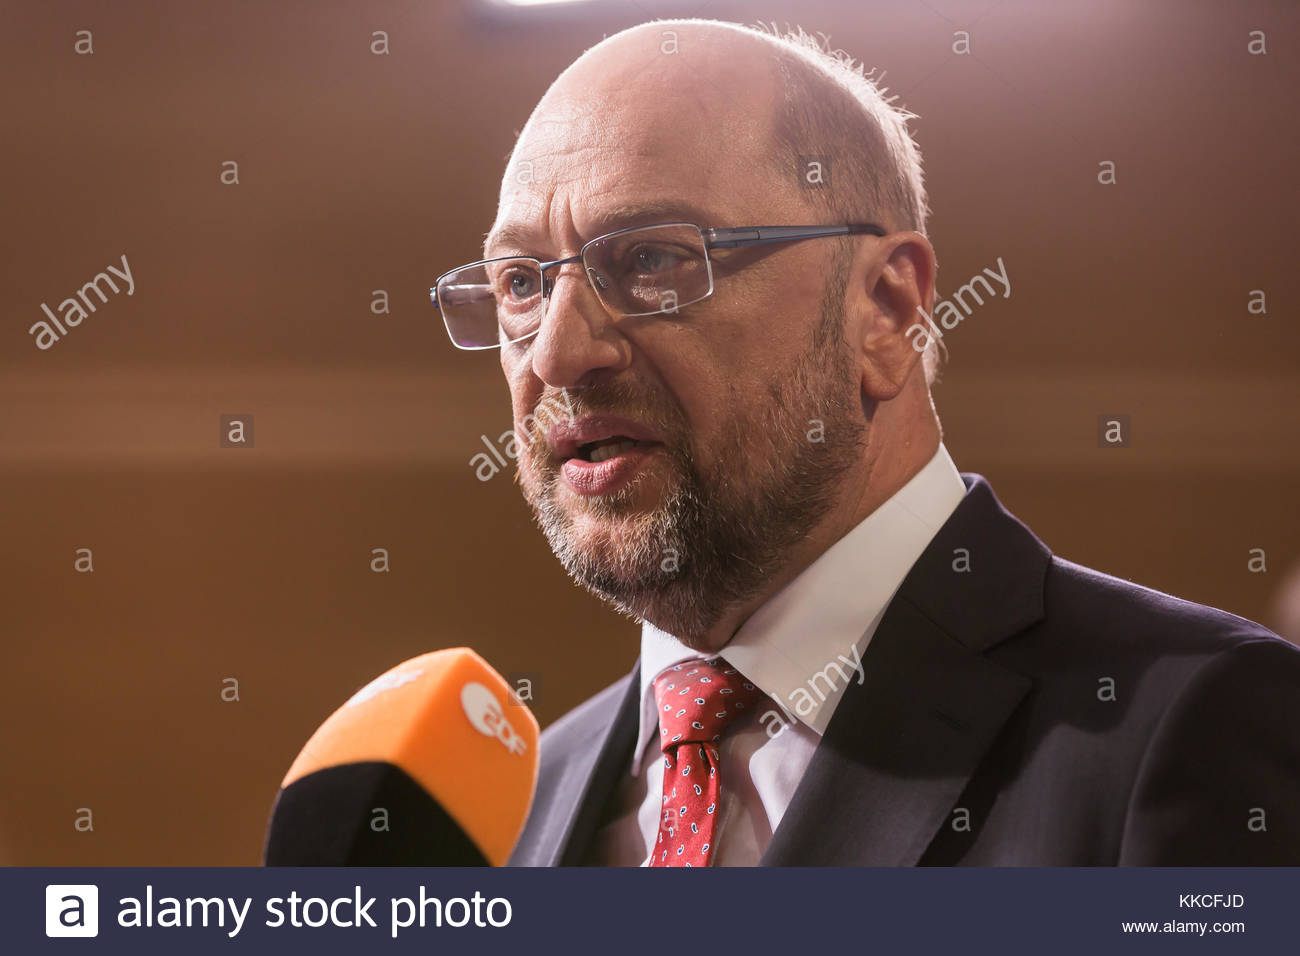 Das Rote Sofa Howard Carpendale Der Zdf Stock Photos And Der Zdf Stock Images Page 3 Alamy